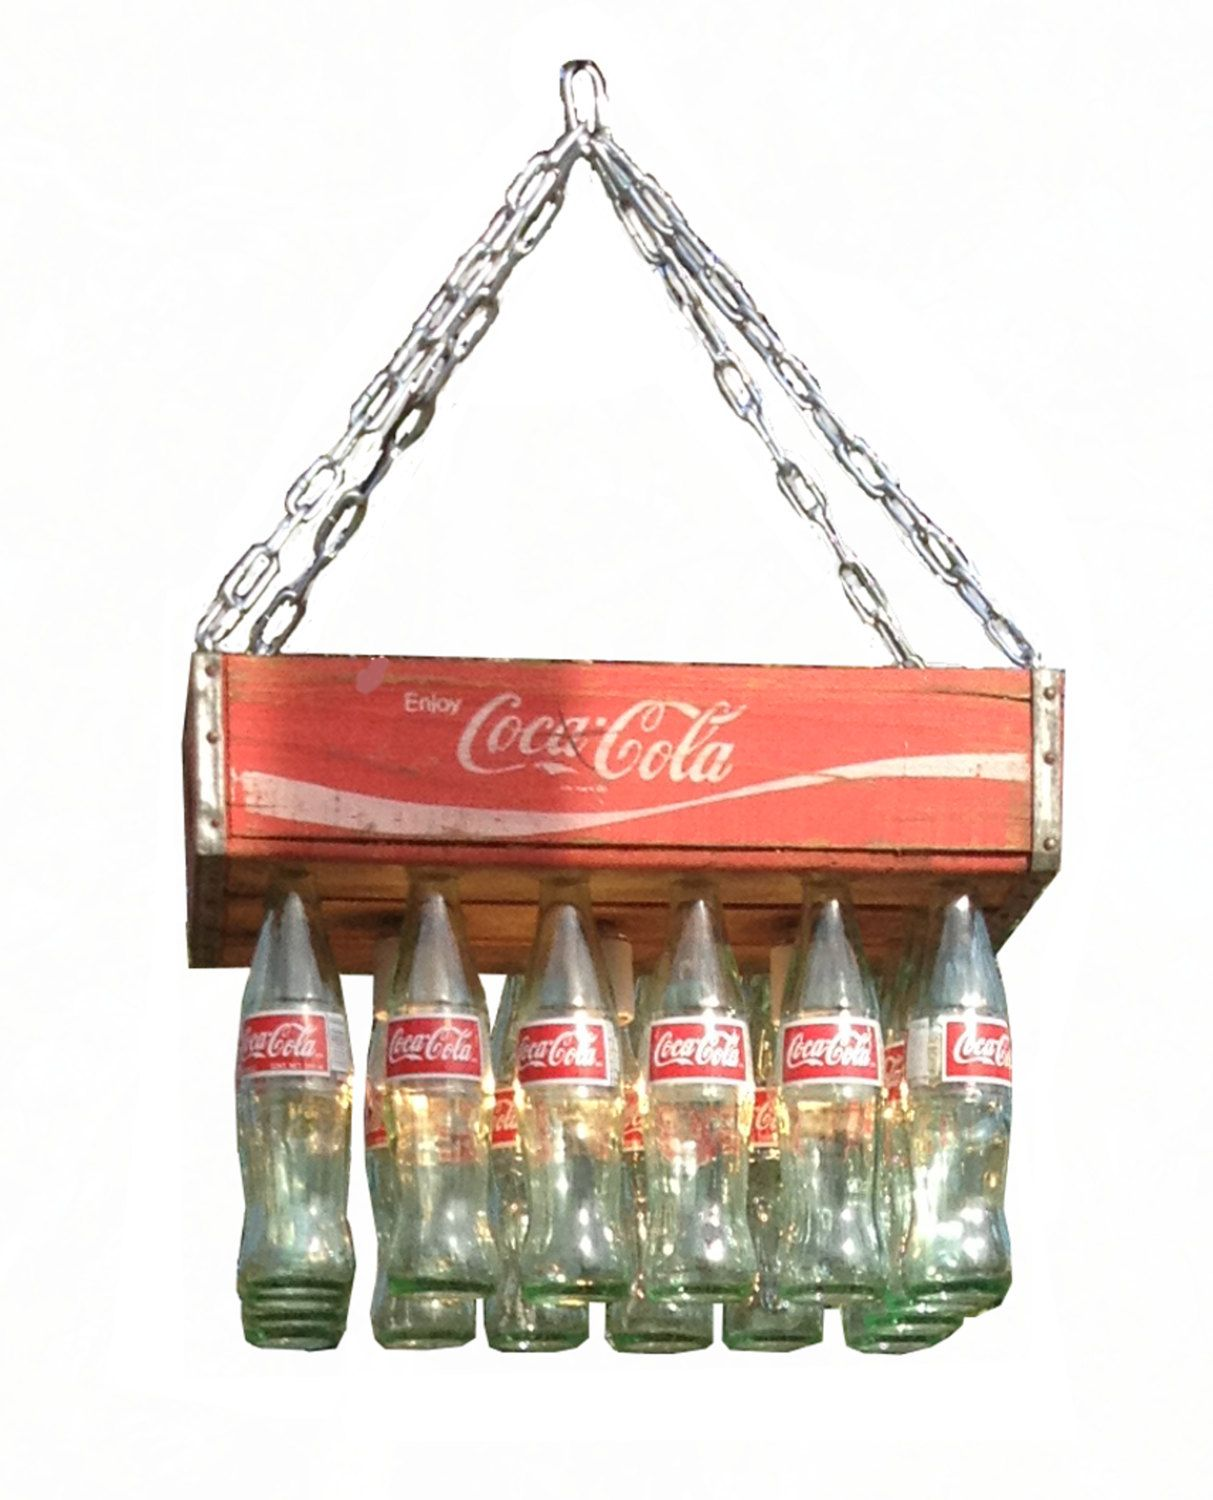 Coke crate chandelier by bigswigdesign on etsy 24500 should coke crate chandelier by bigswigdesign on etsy 24500 arubaitofo Images